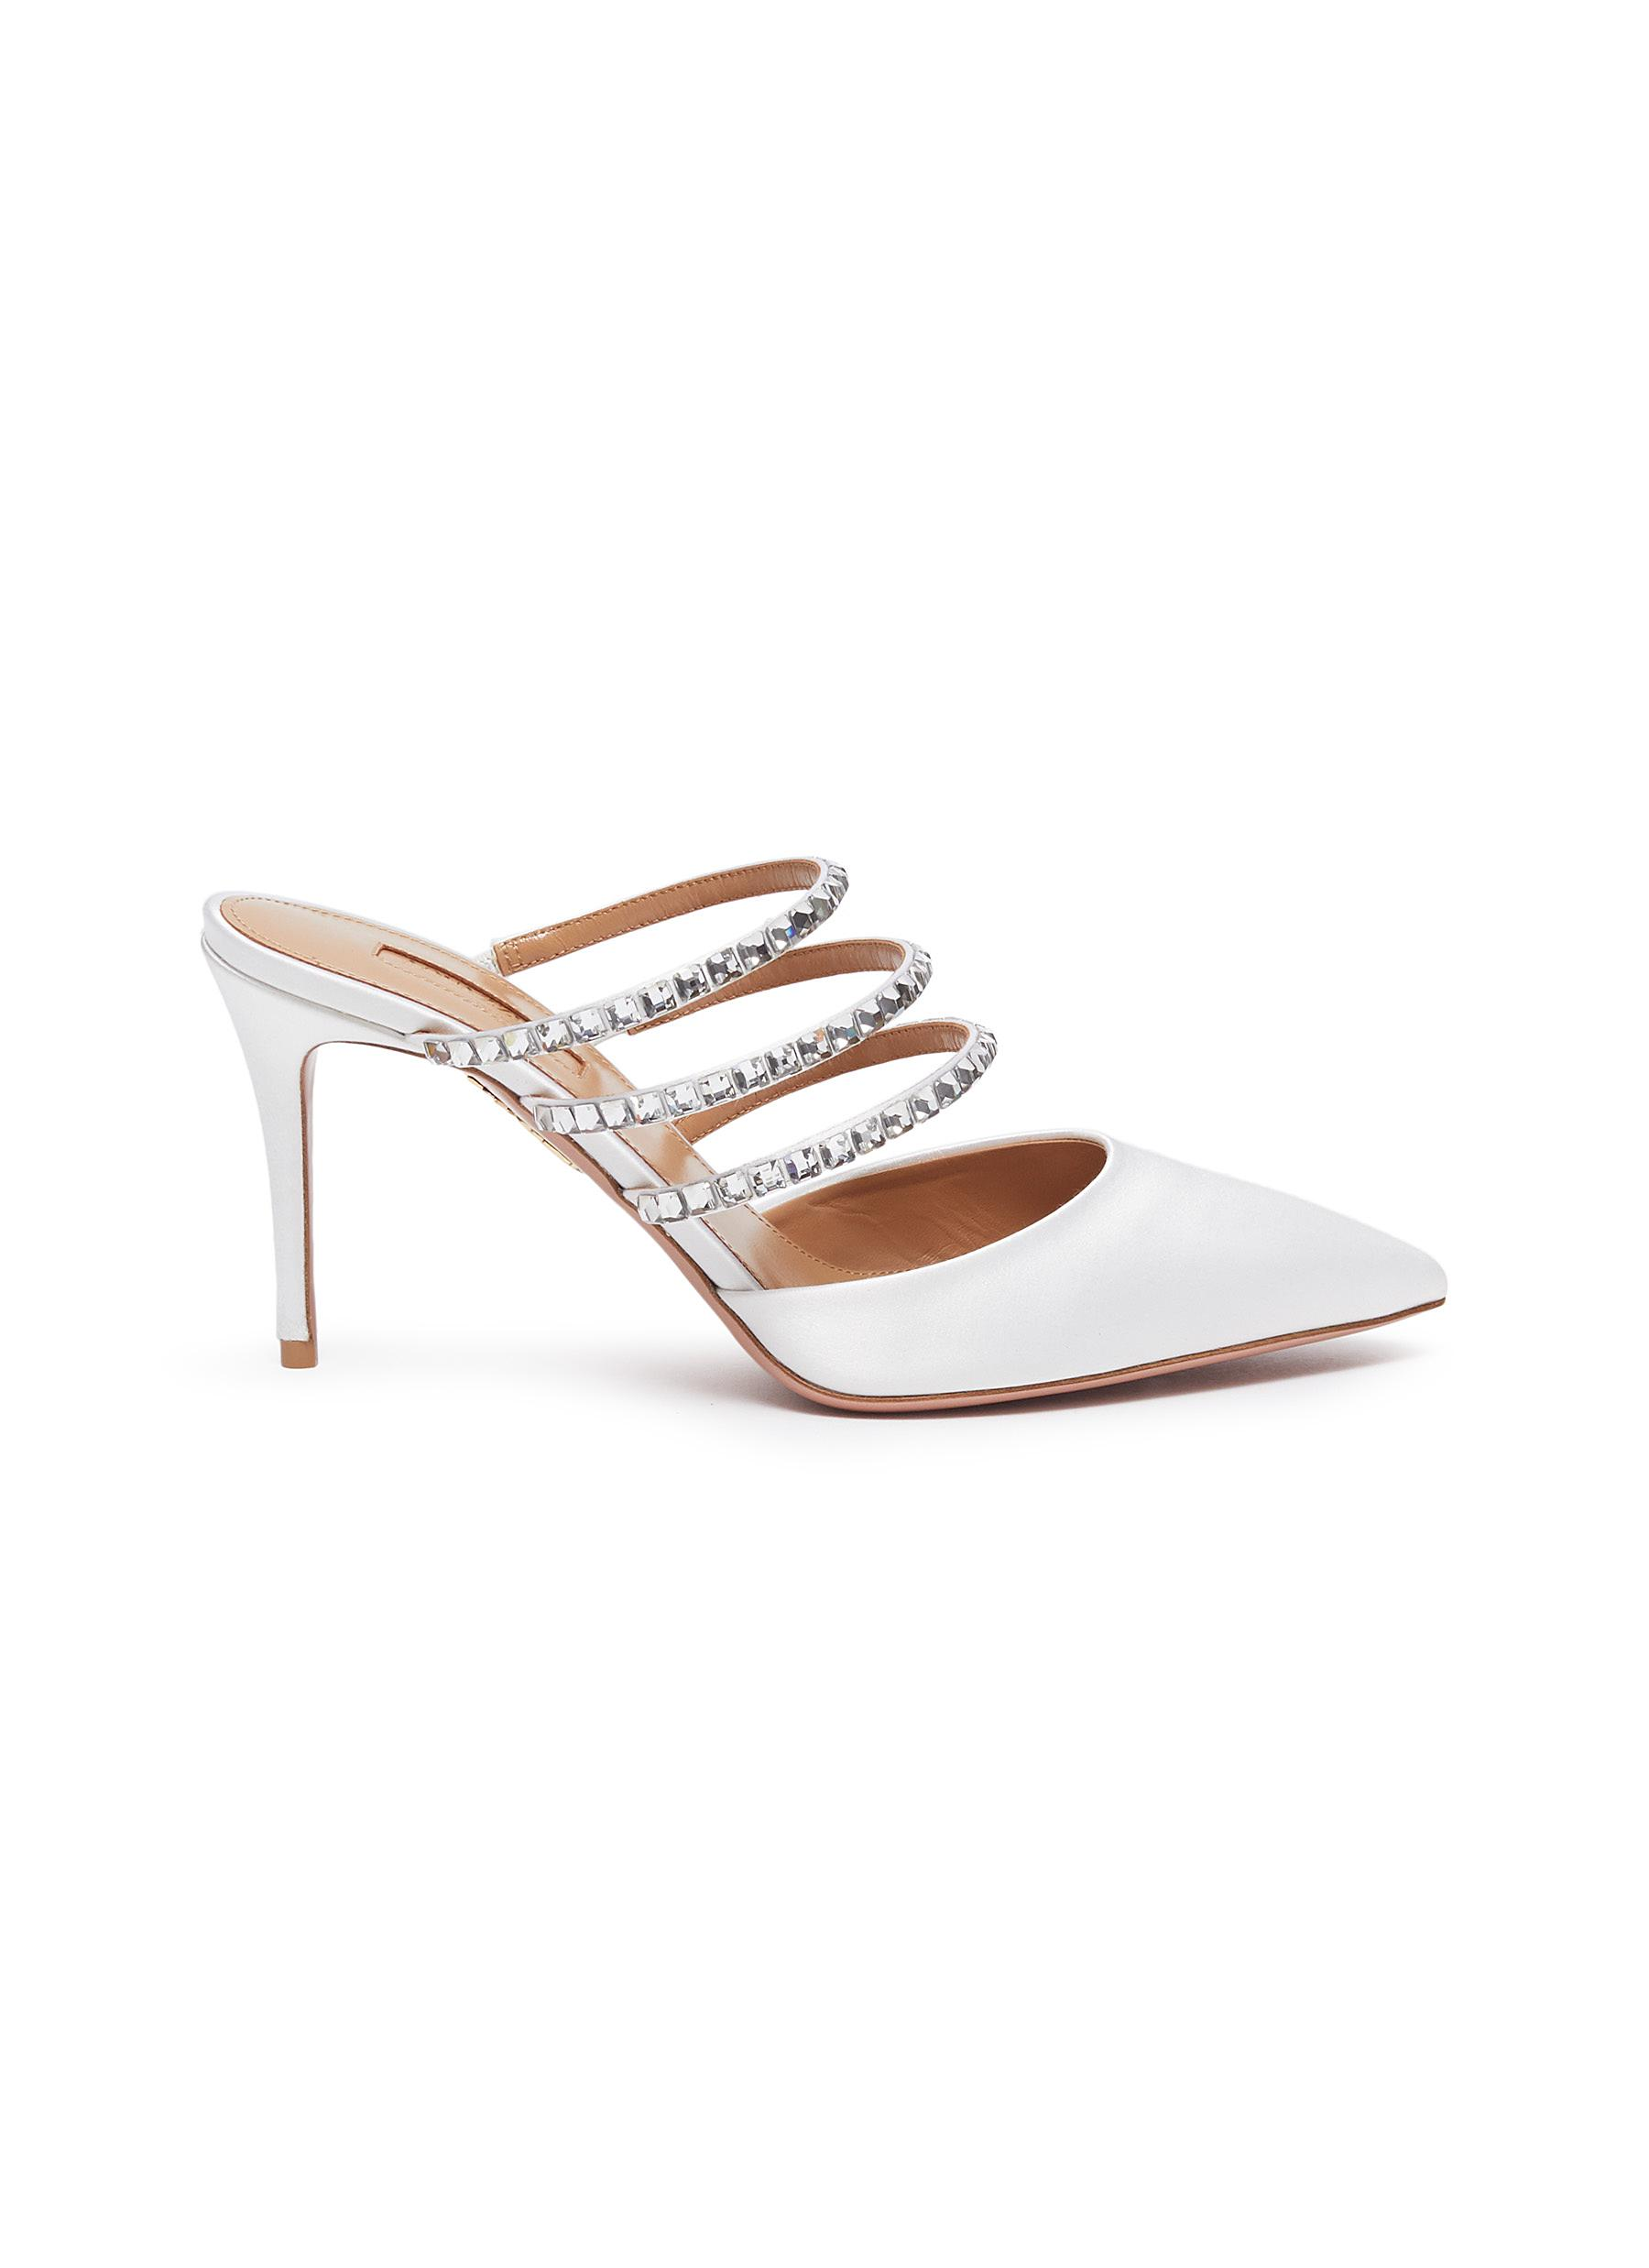 Donata Swarovski crystal strappy satin mules by Aquazzura